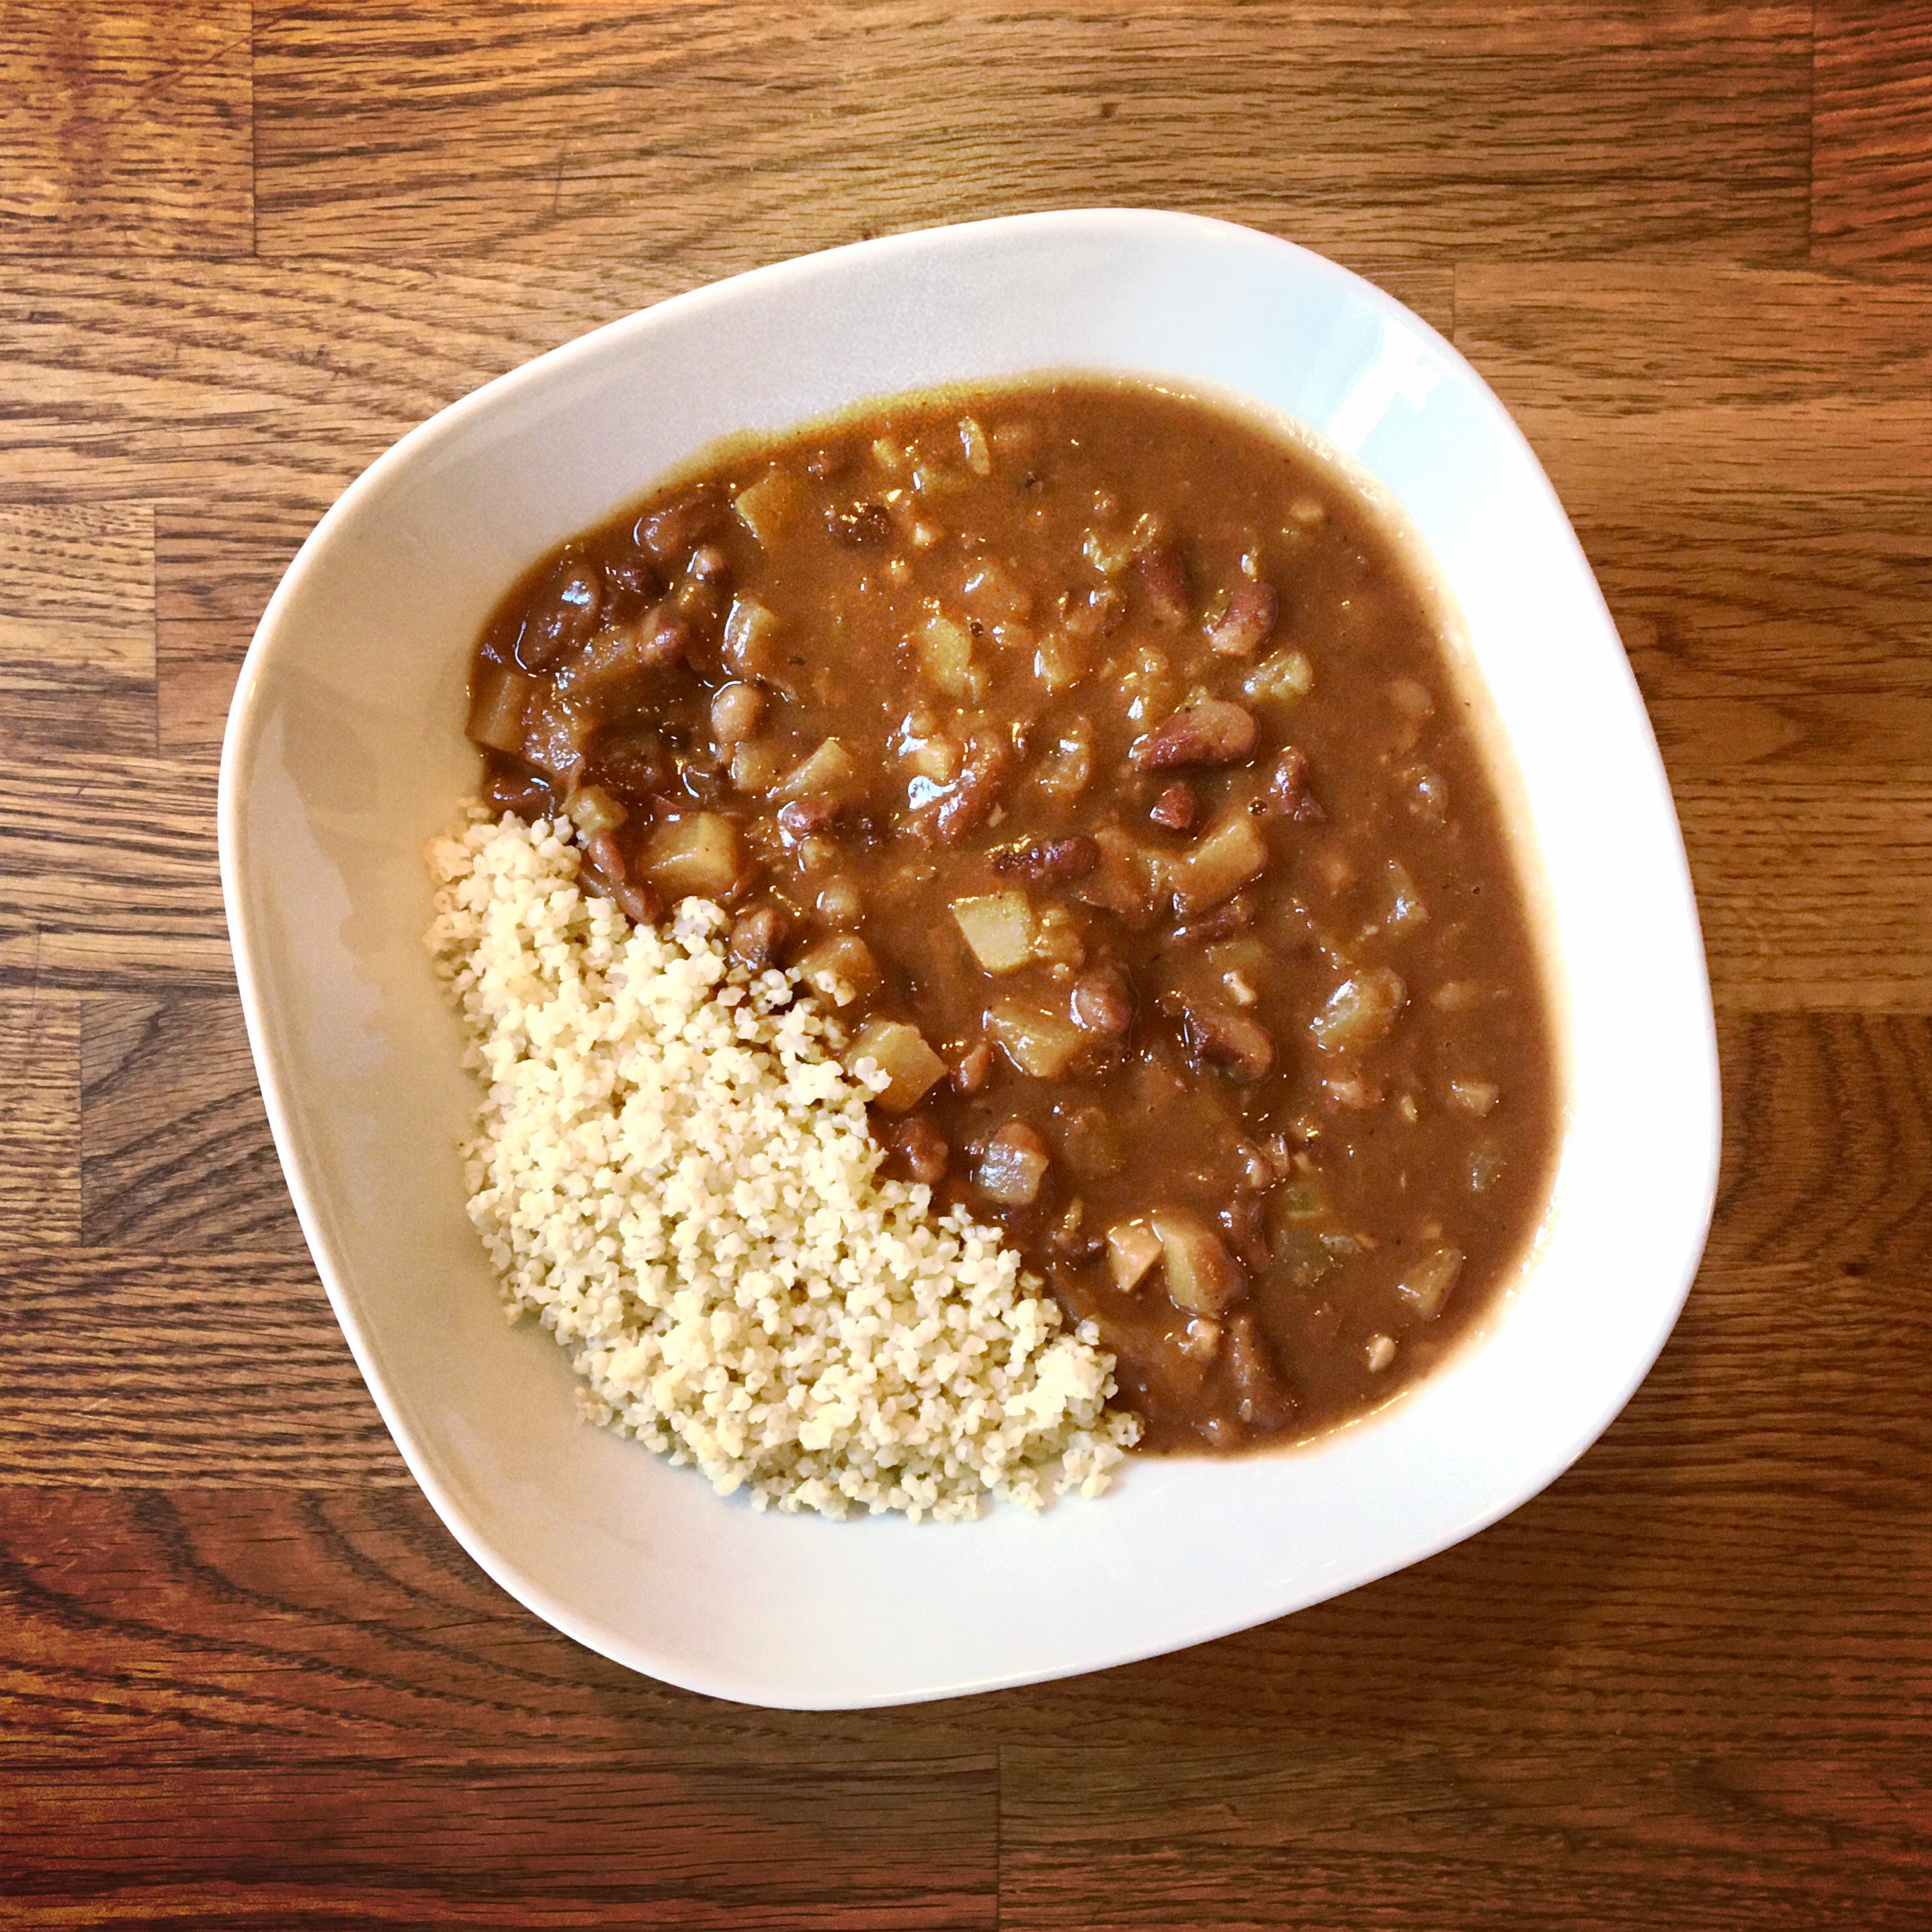 Painted Pony Pumpkin Chili with Organic Millet